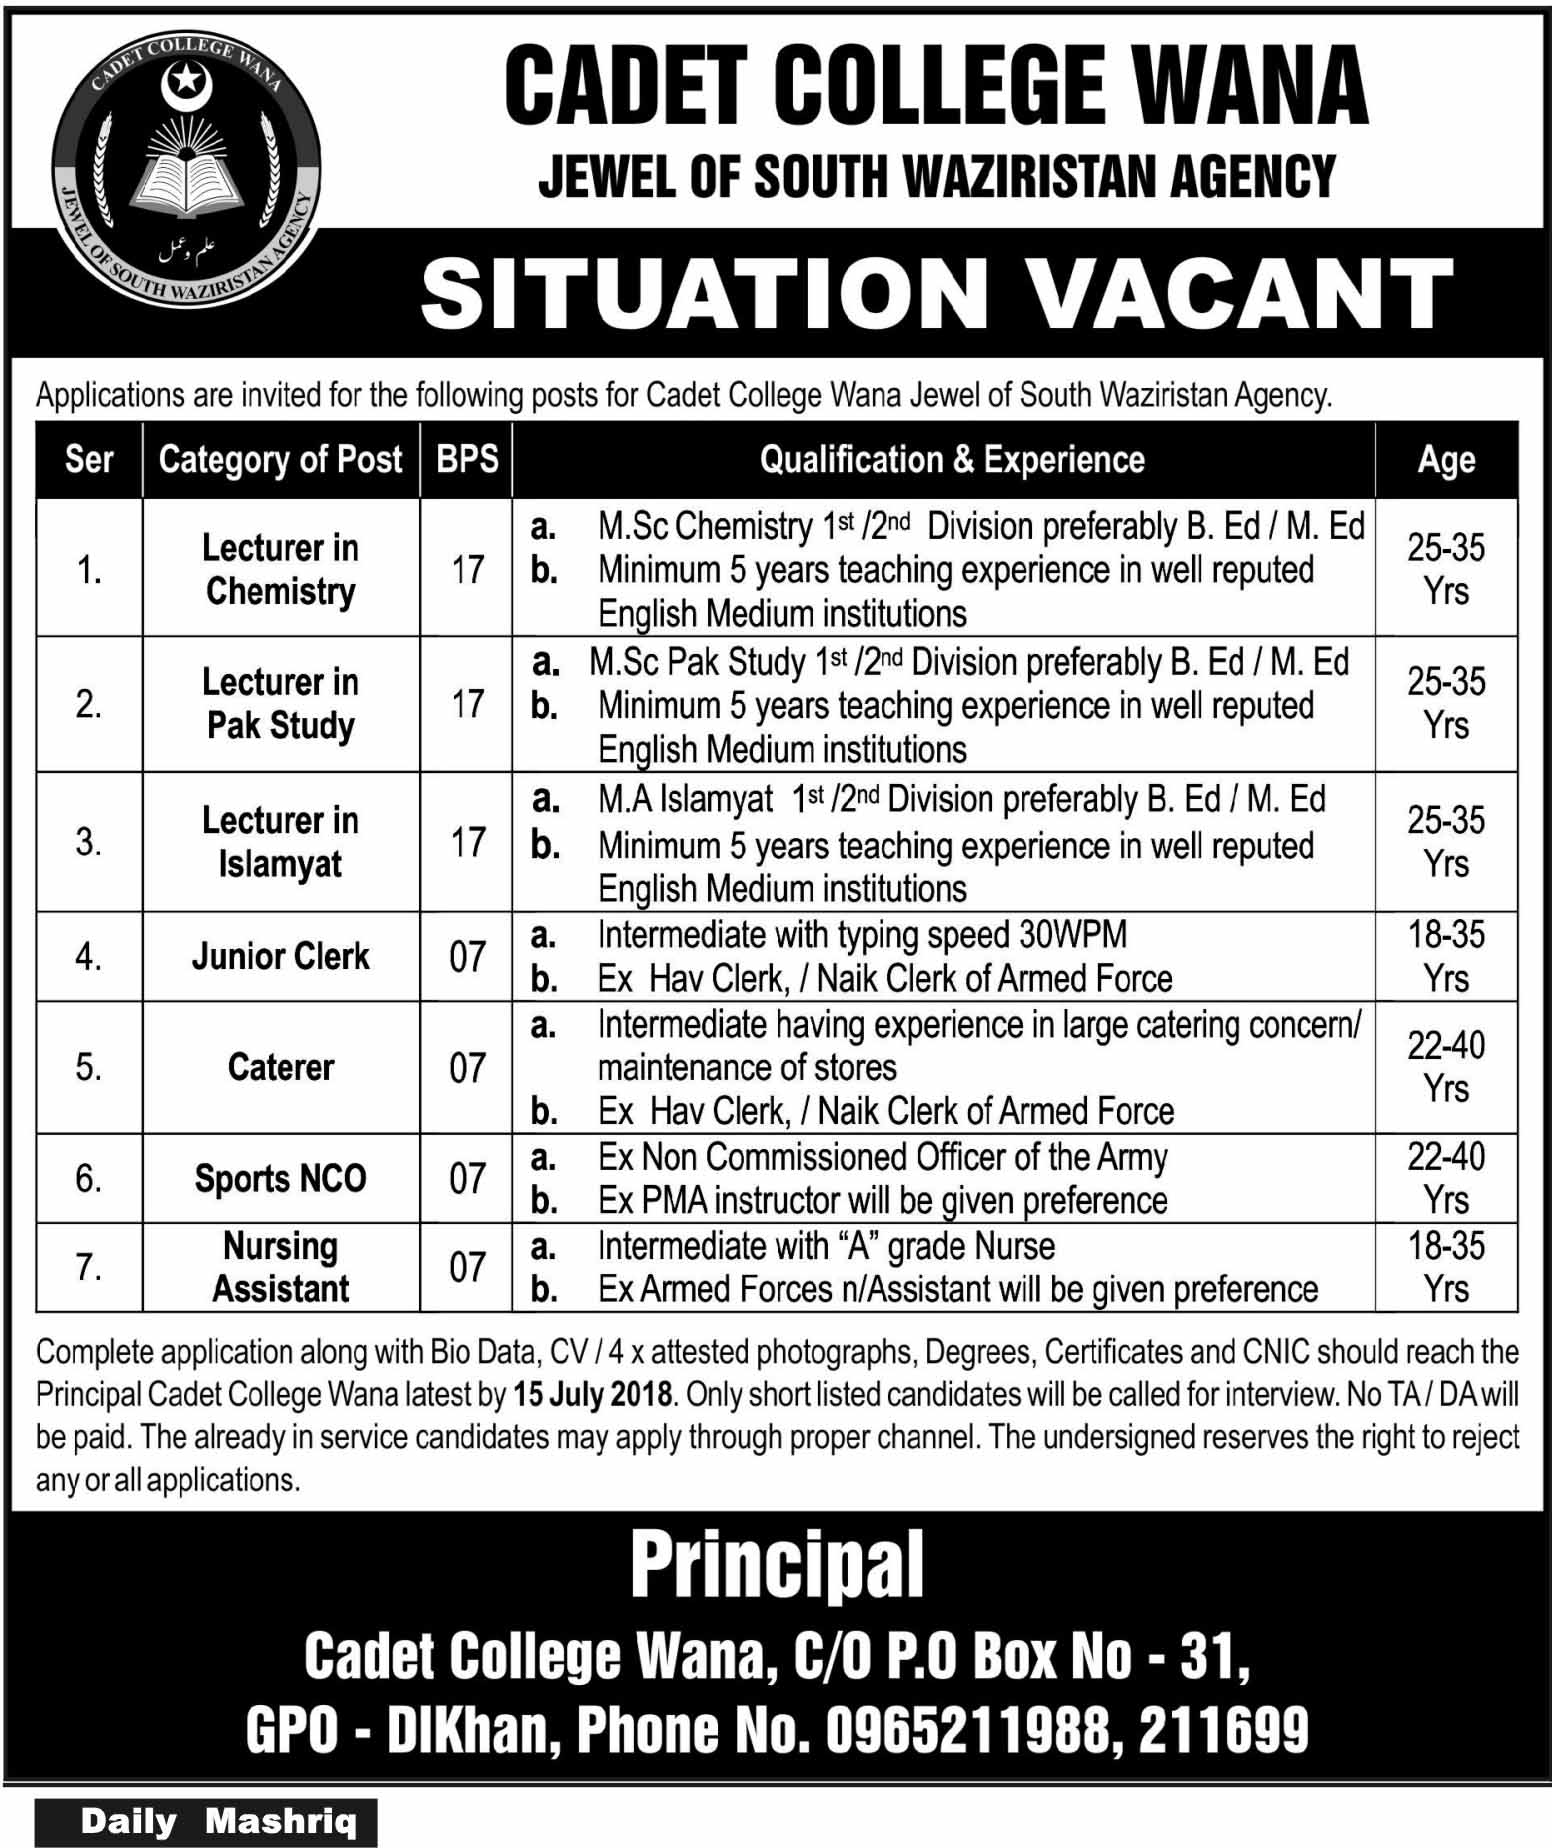 Jobs in Cadet College Wana 30 June 2018